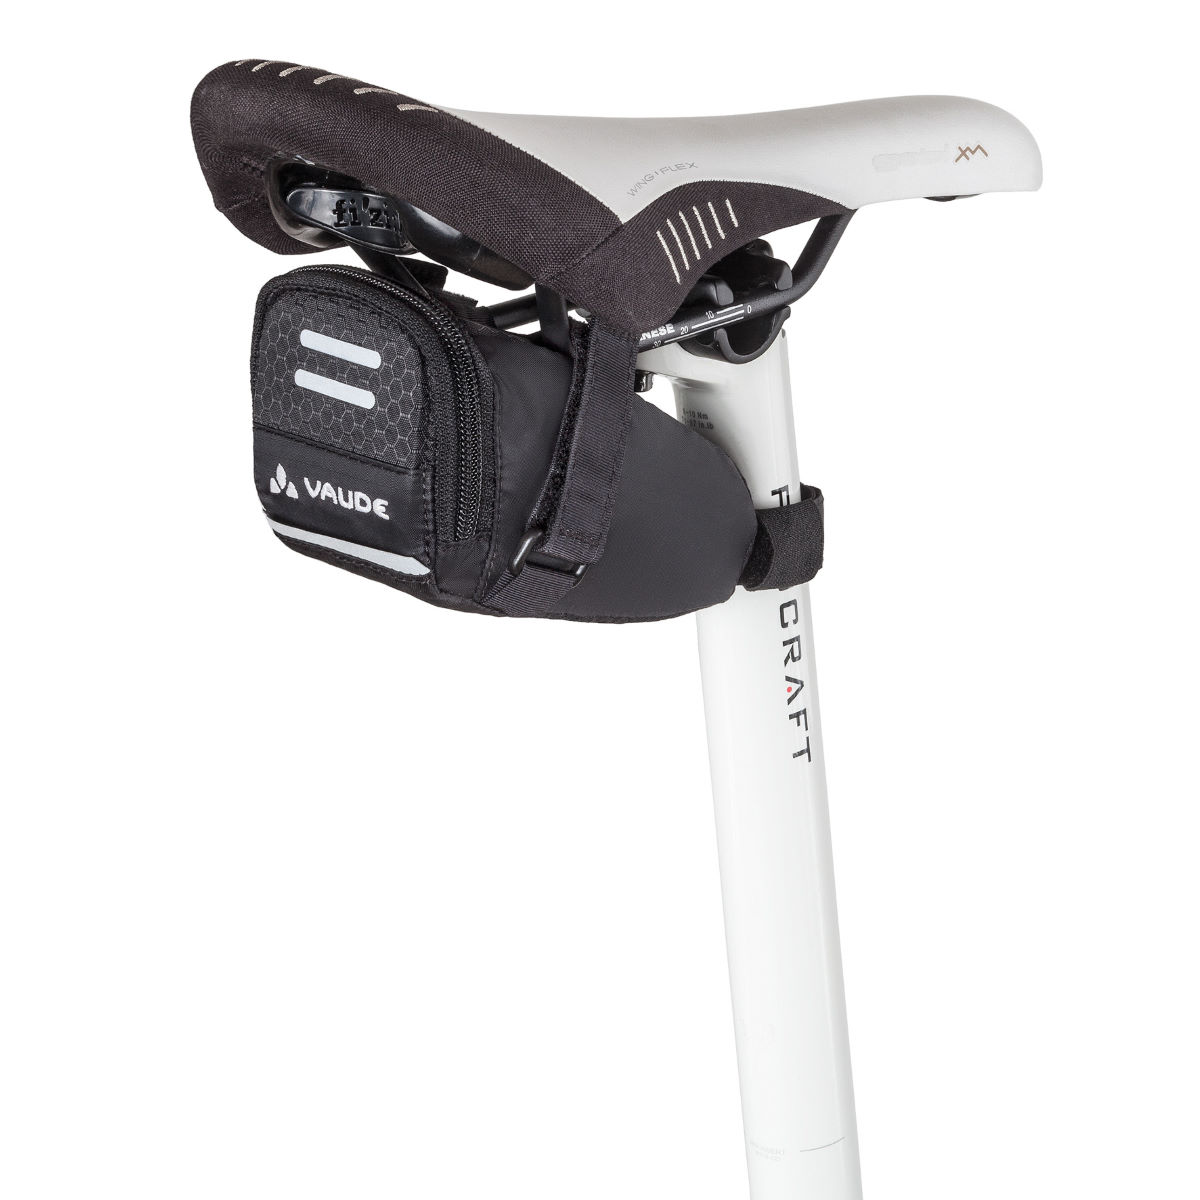 Sacoche de selle Vaude Race Light - Taille unique Noir